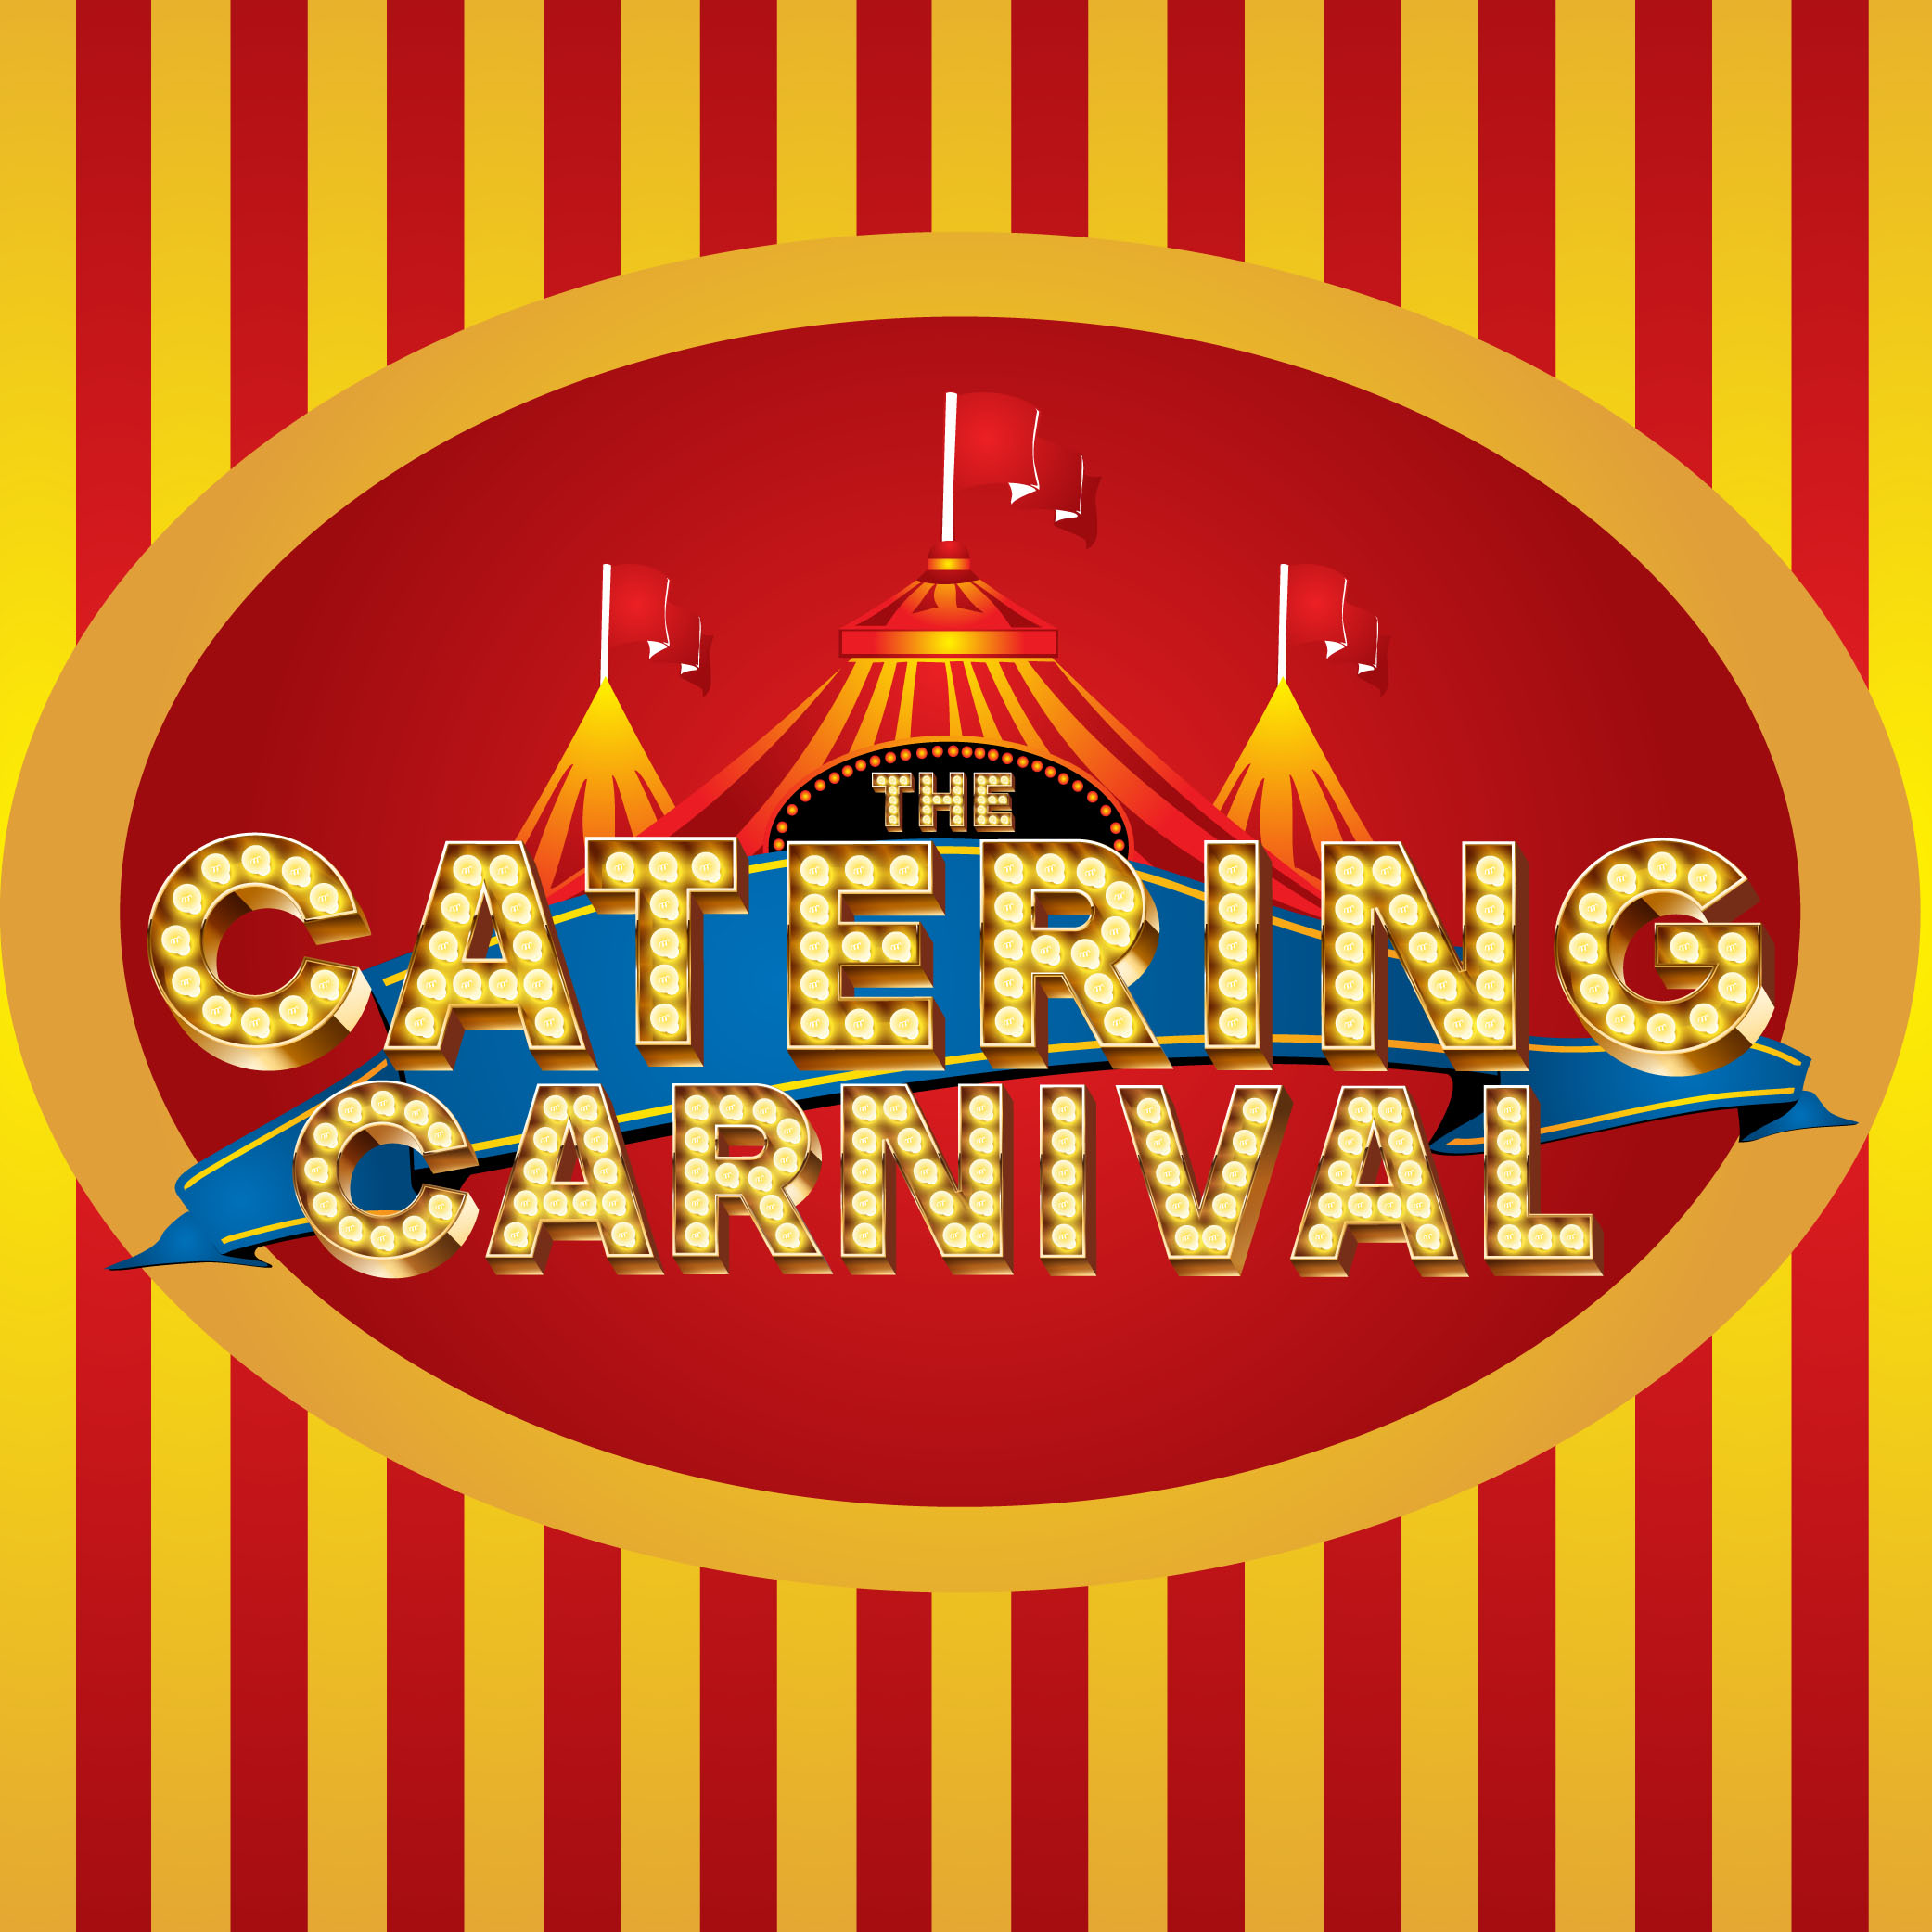 The Catering Carnival - The Catering Carnival